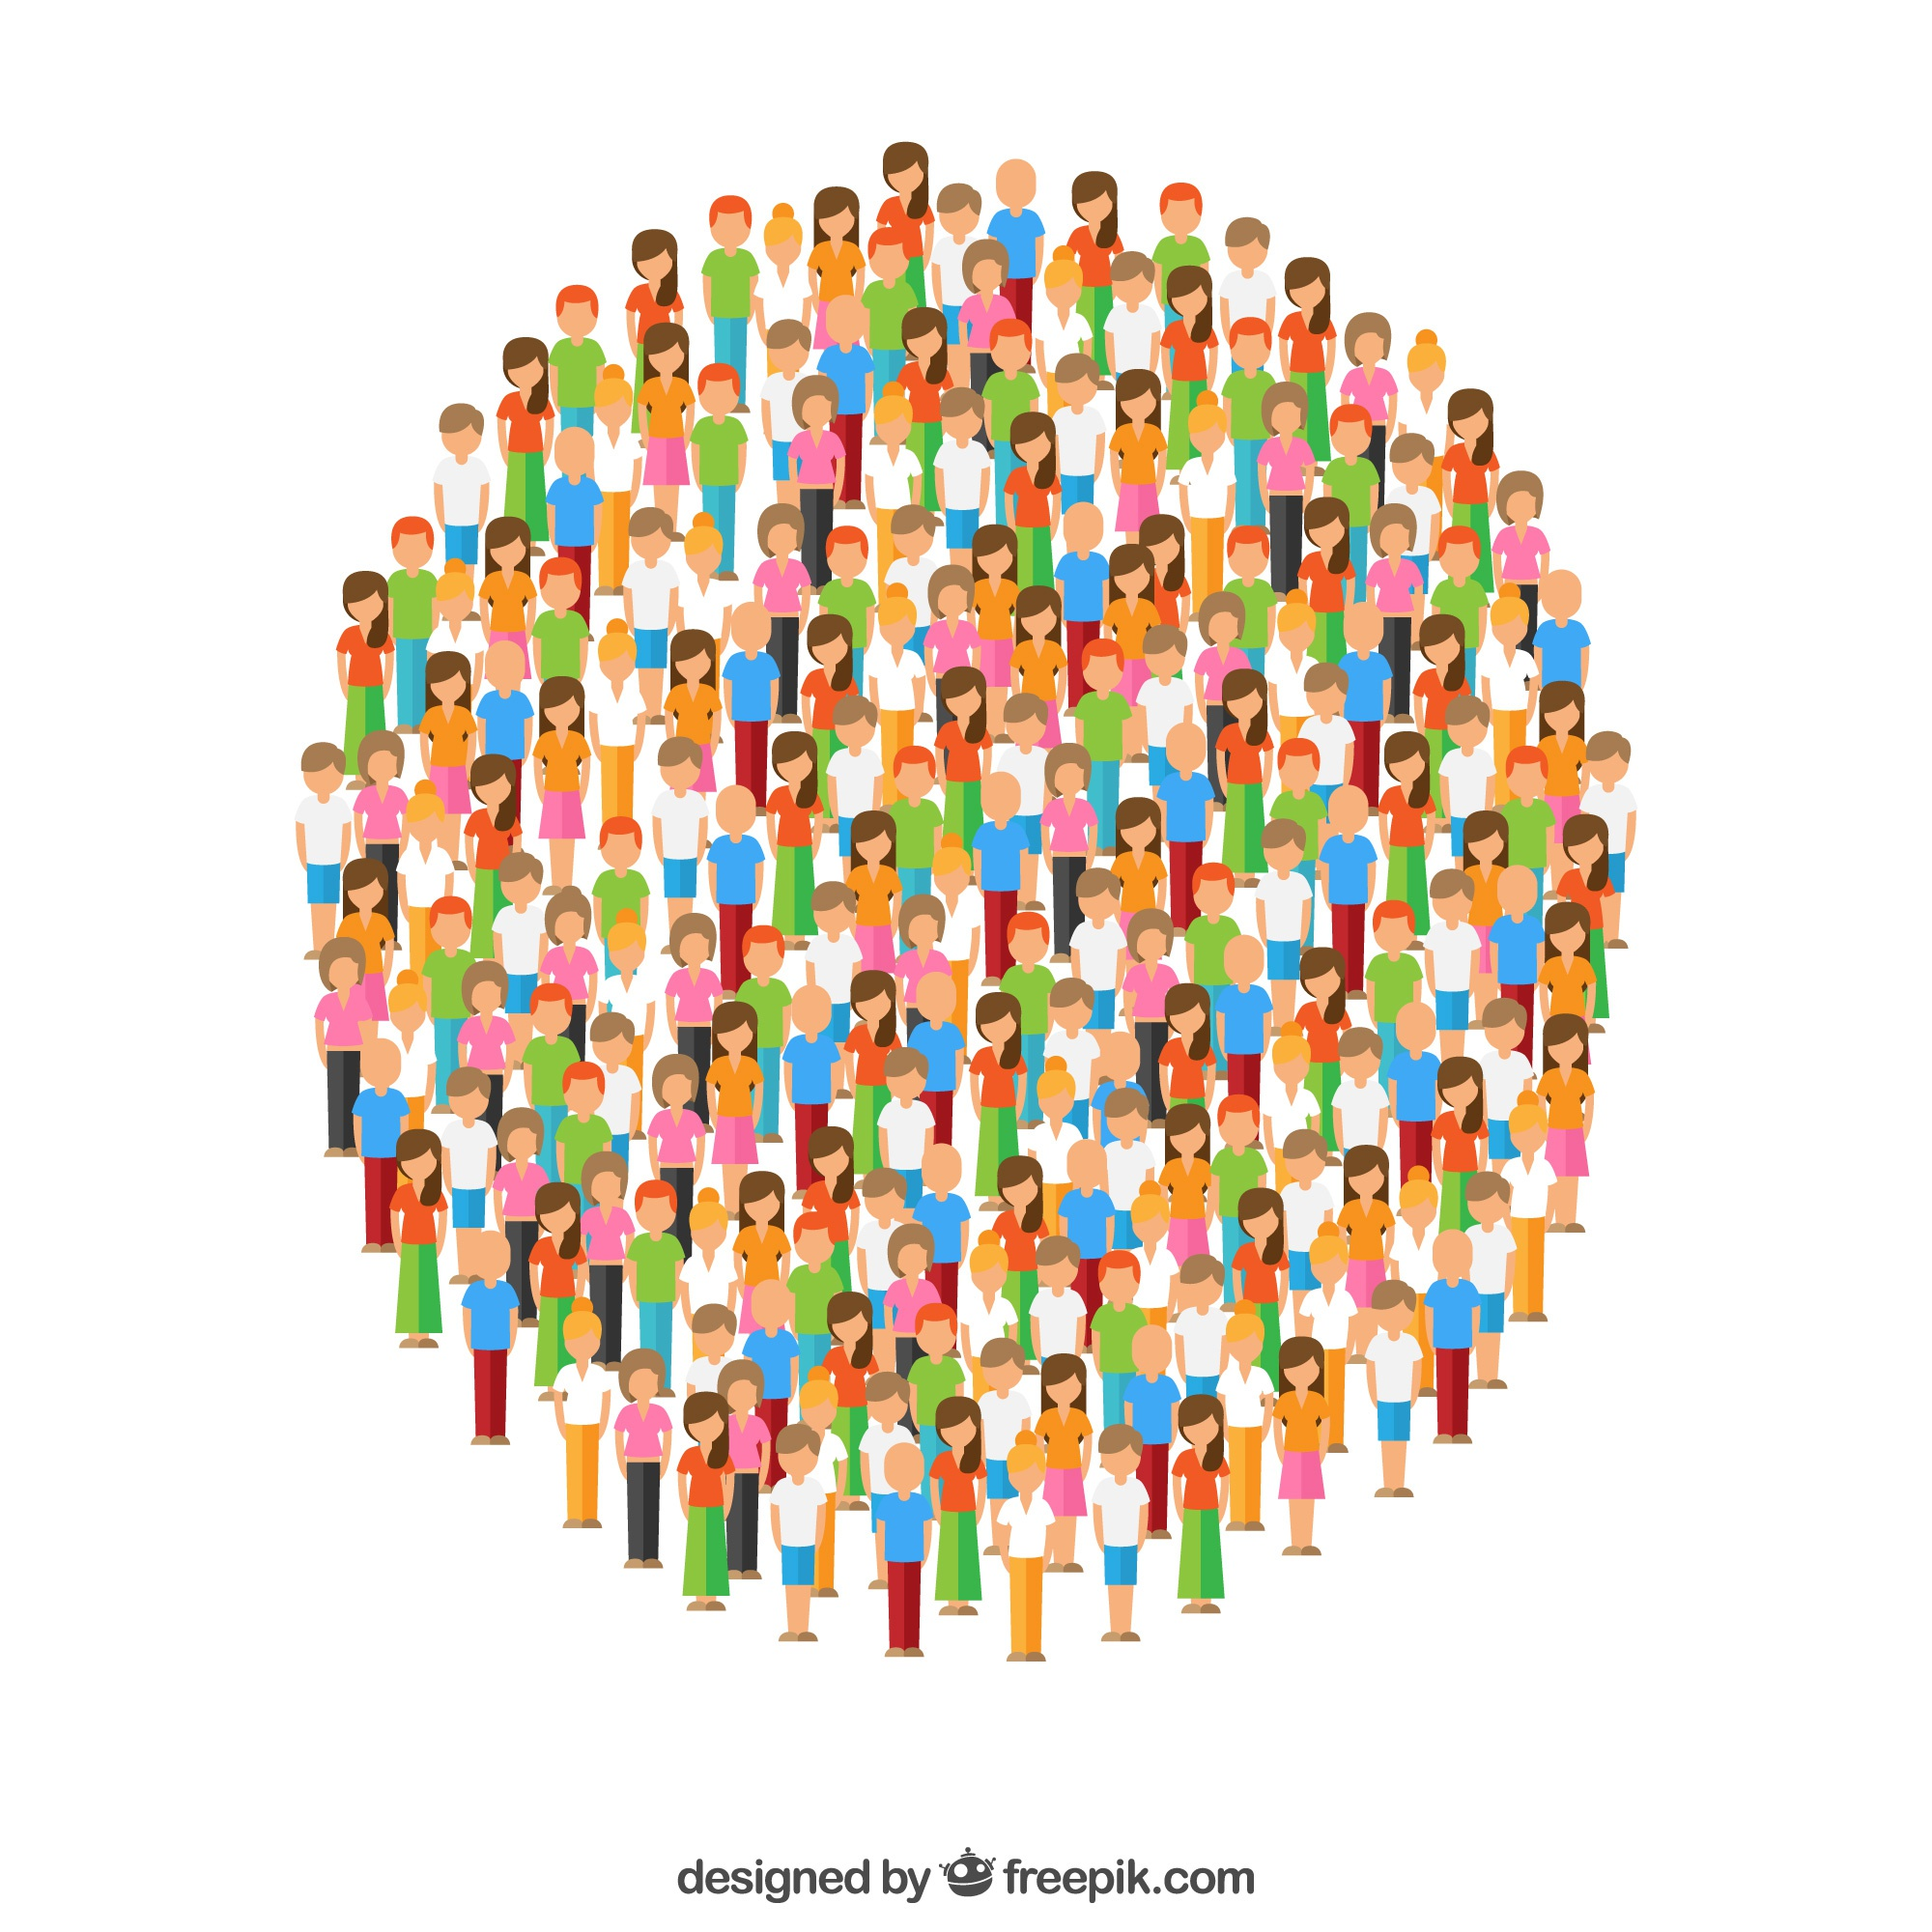 Colorful variety of people forming a circle